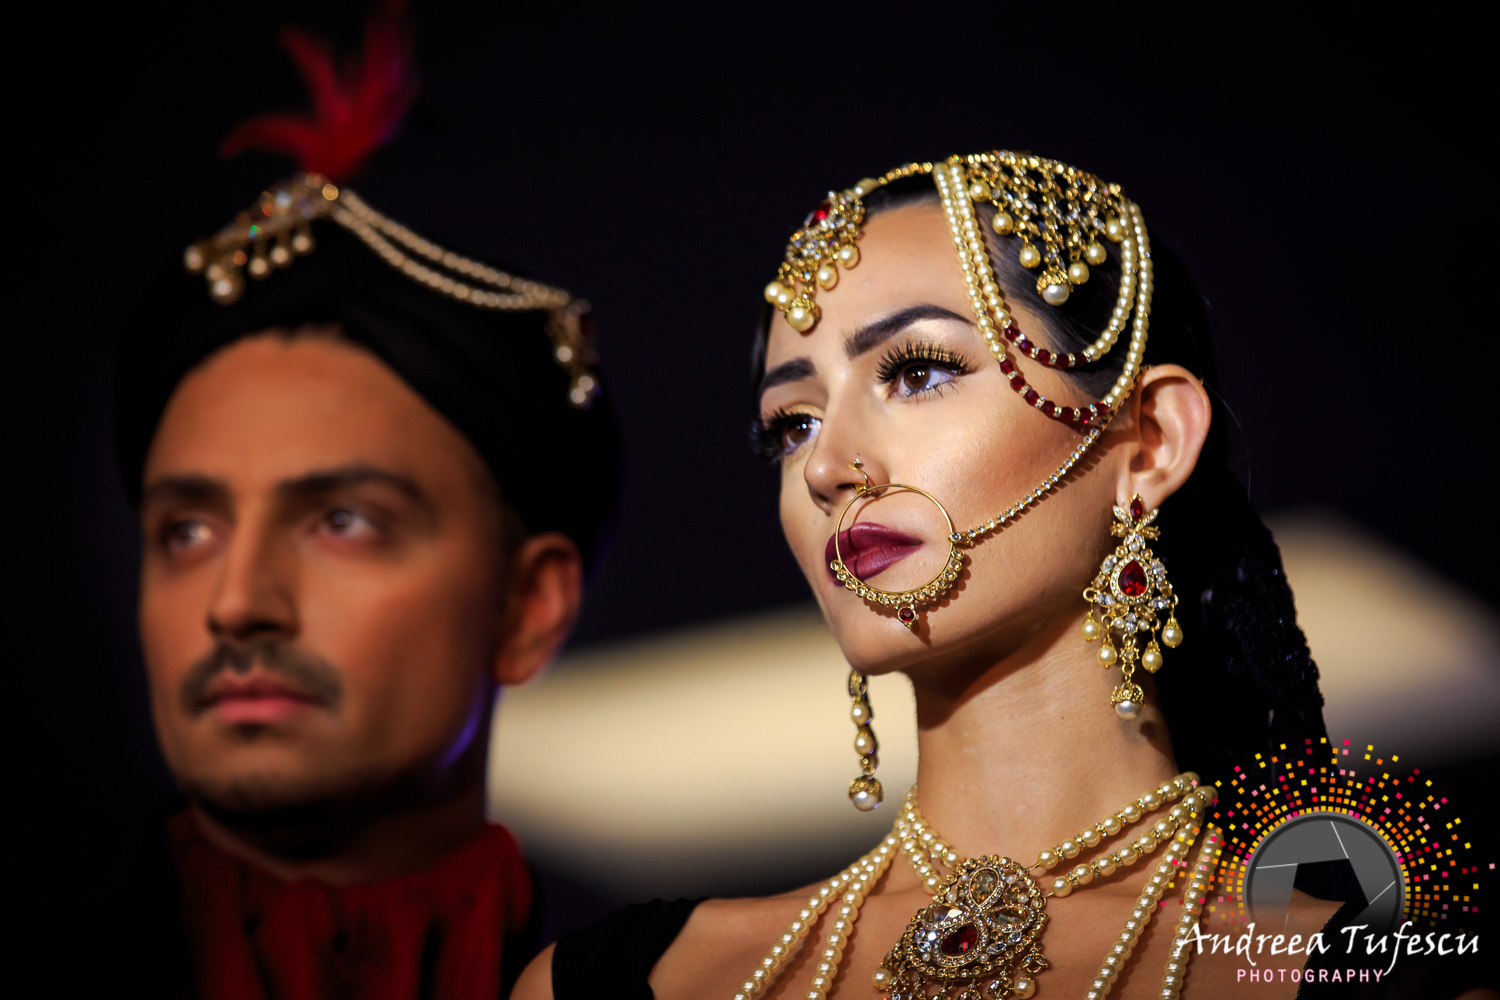 Asian Bride Fashion Show at Excel Olympia